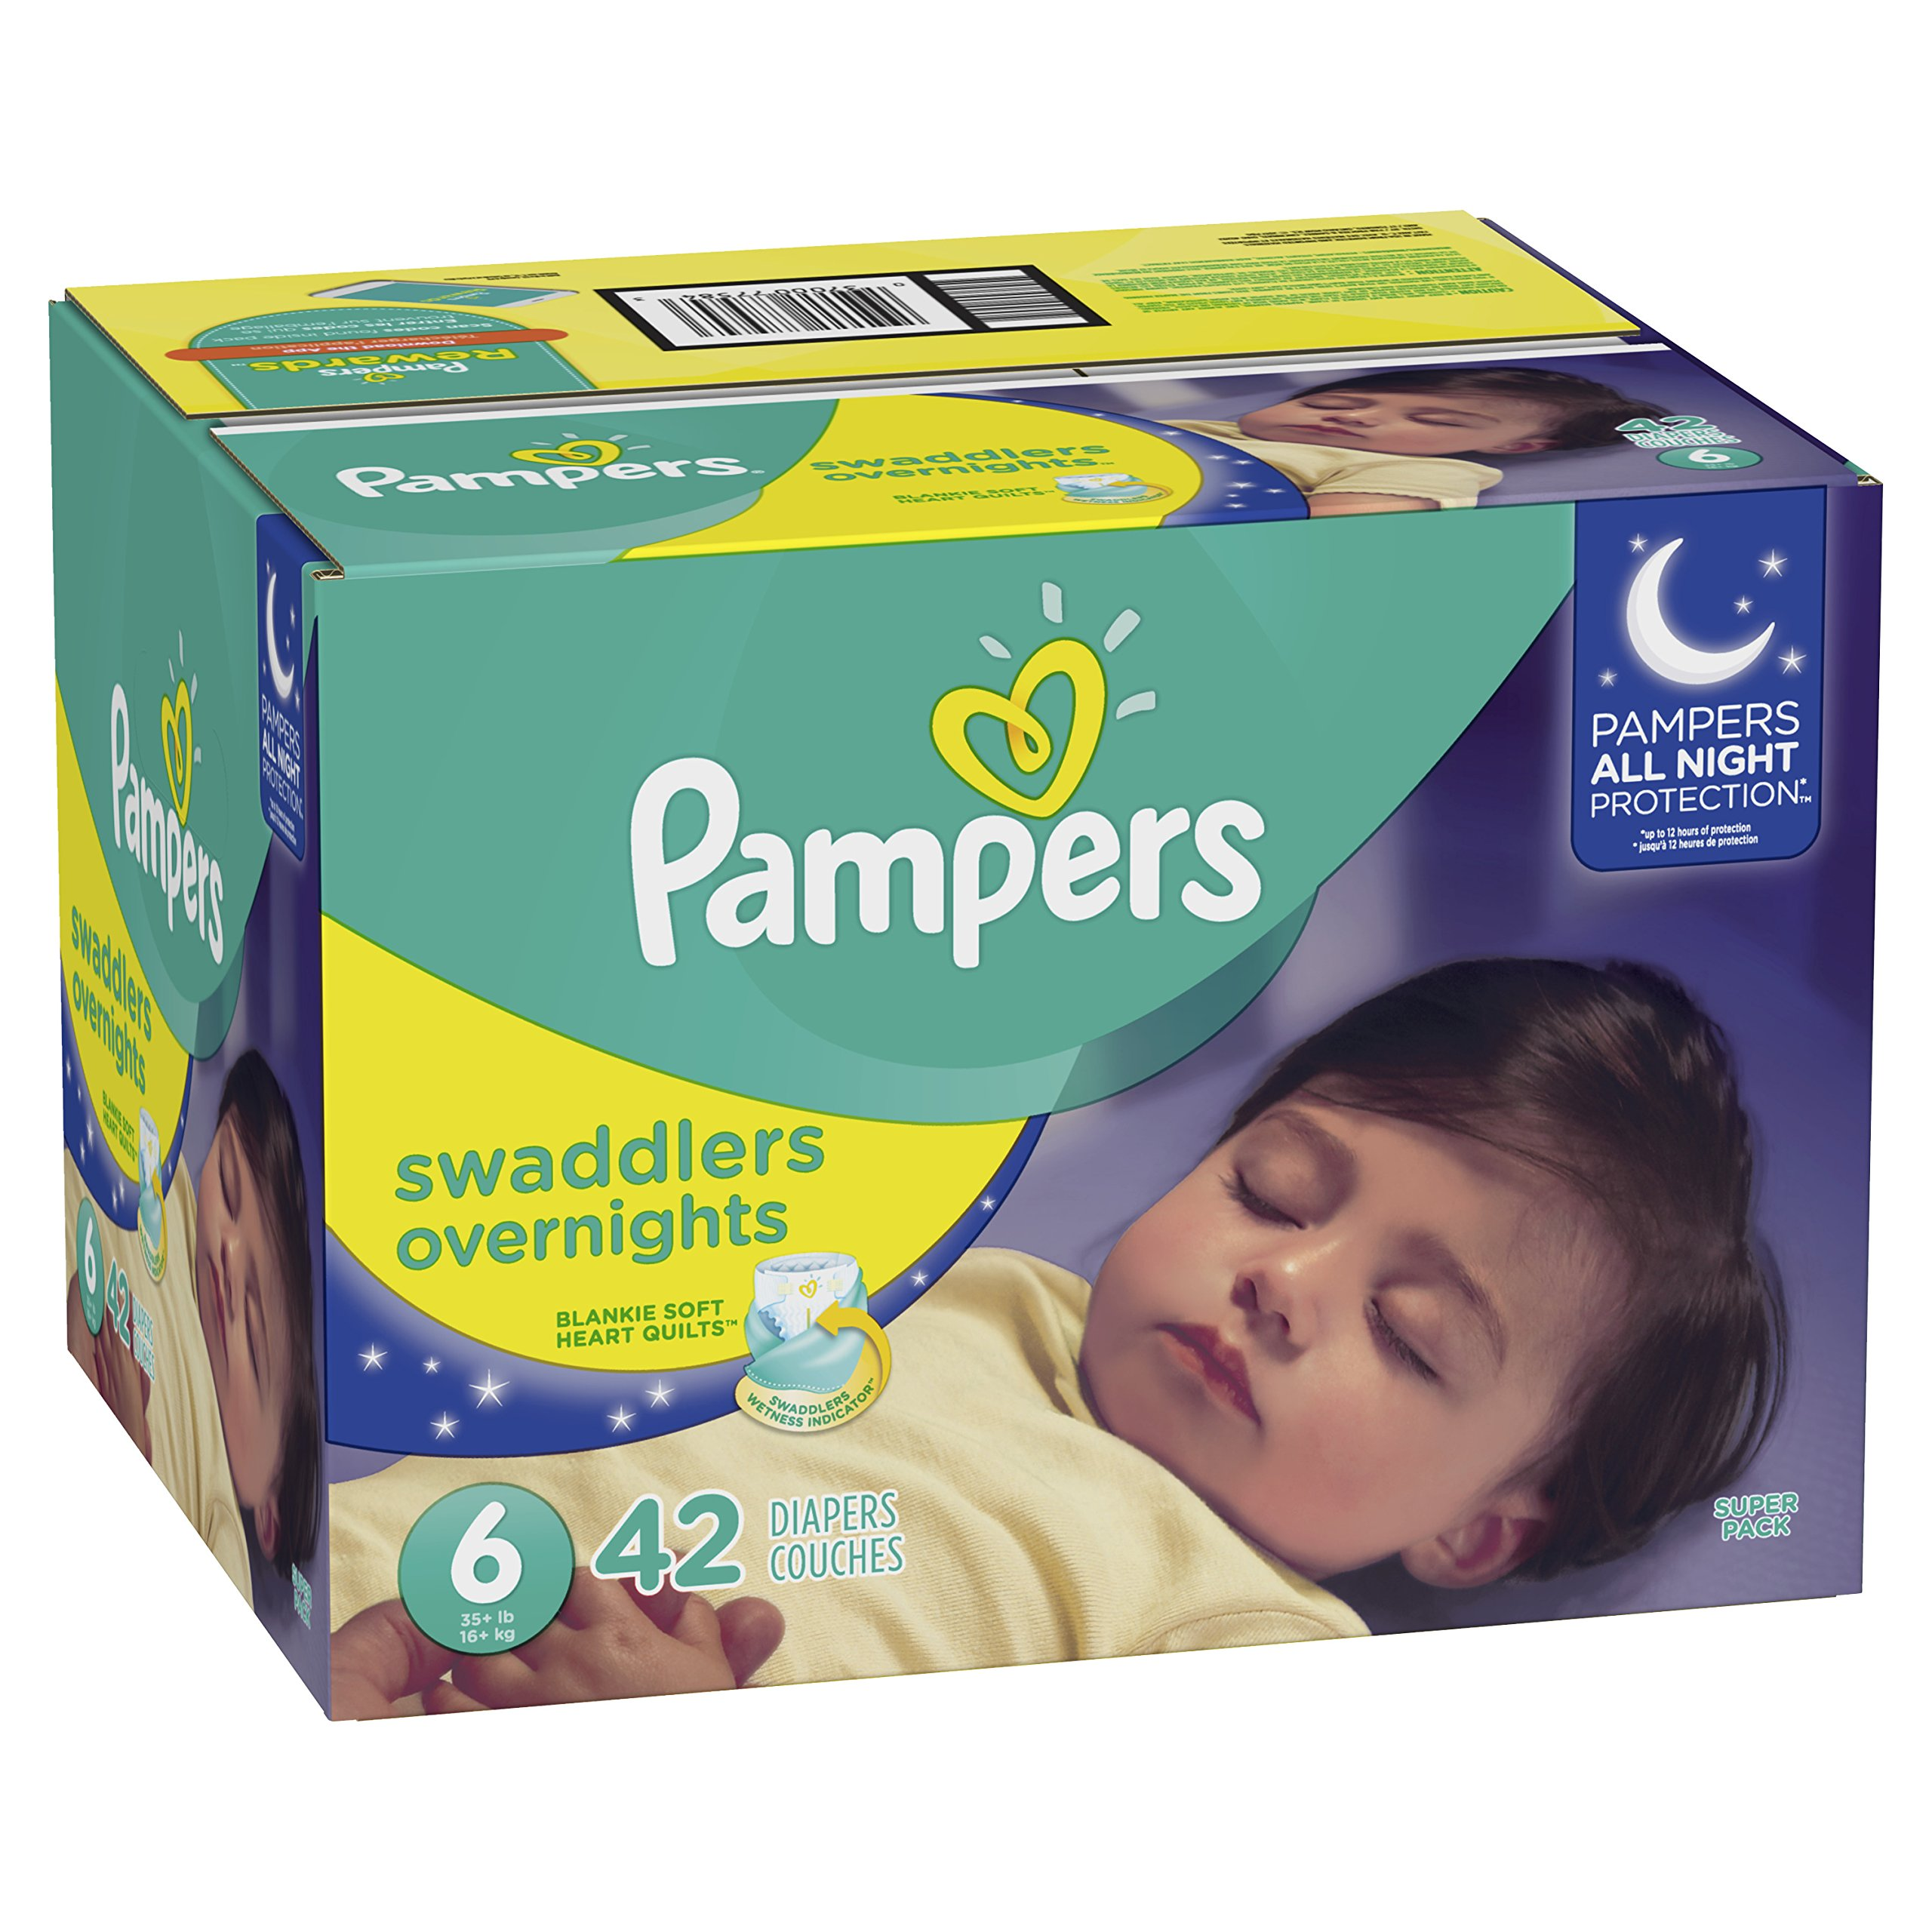 Pampers Swaddlers  Overnights Disposable Diapers Size 6, 42 Count, SUPER